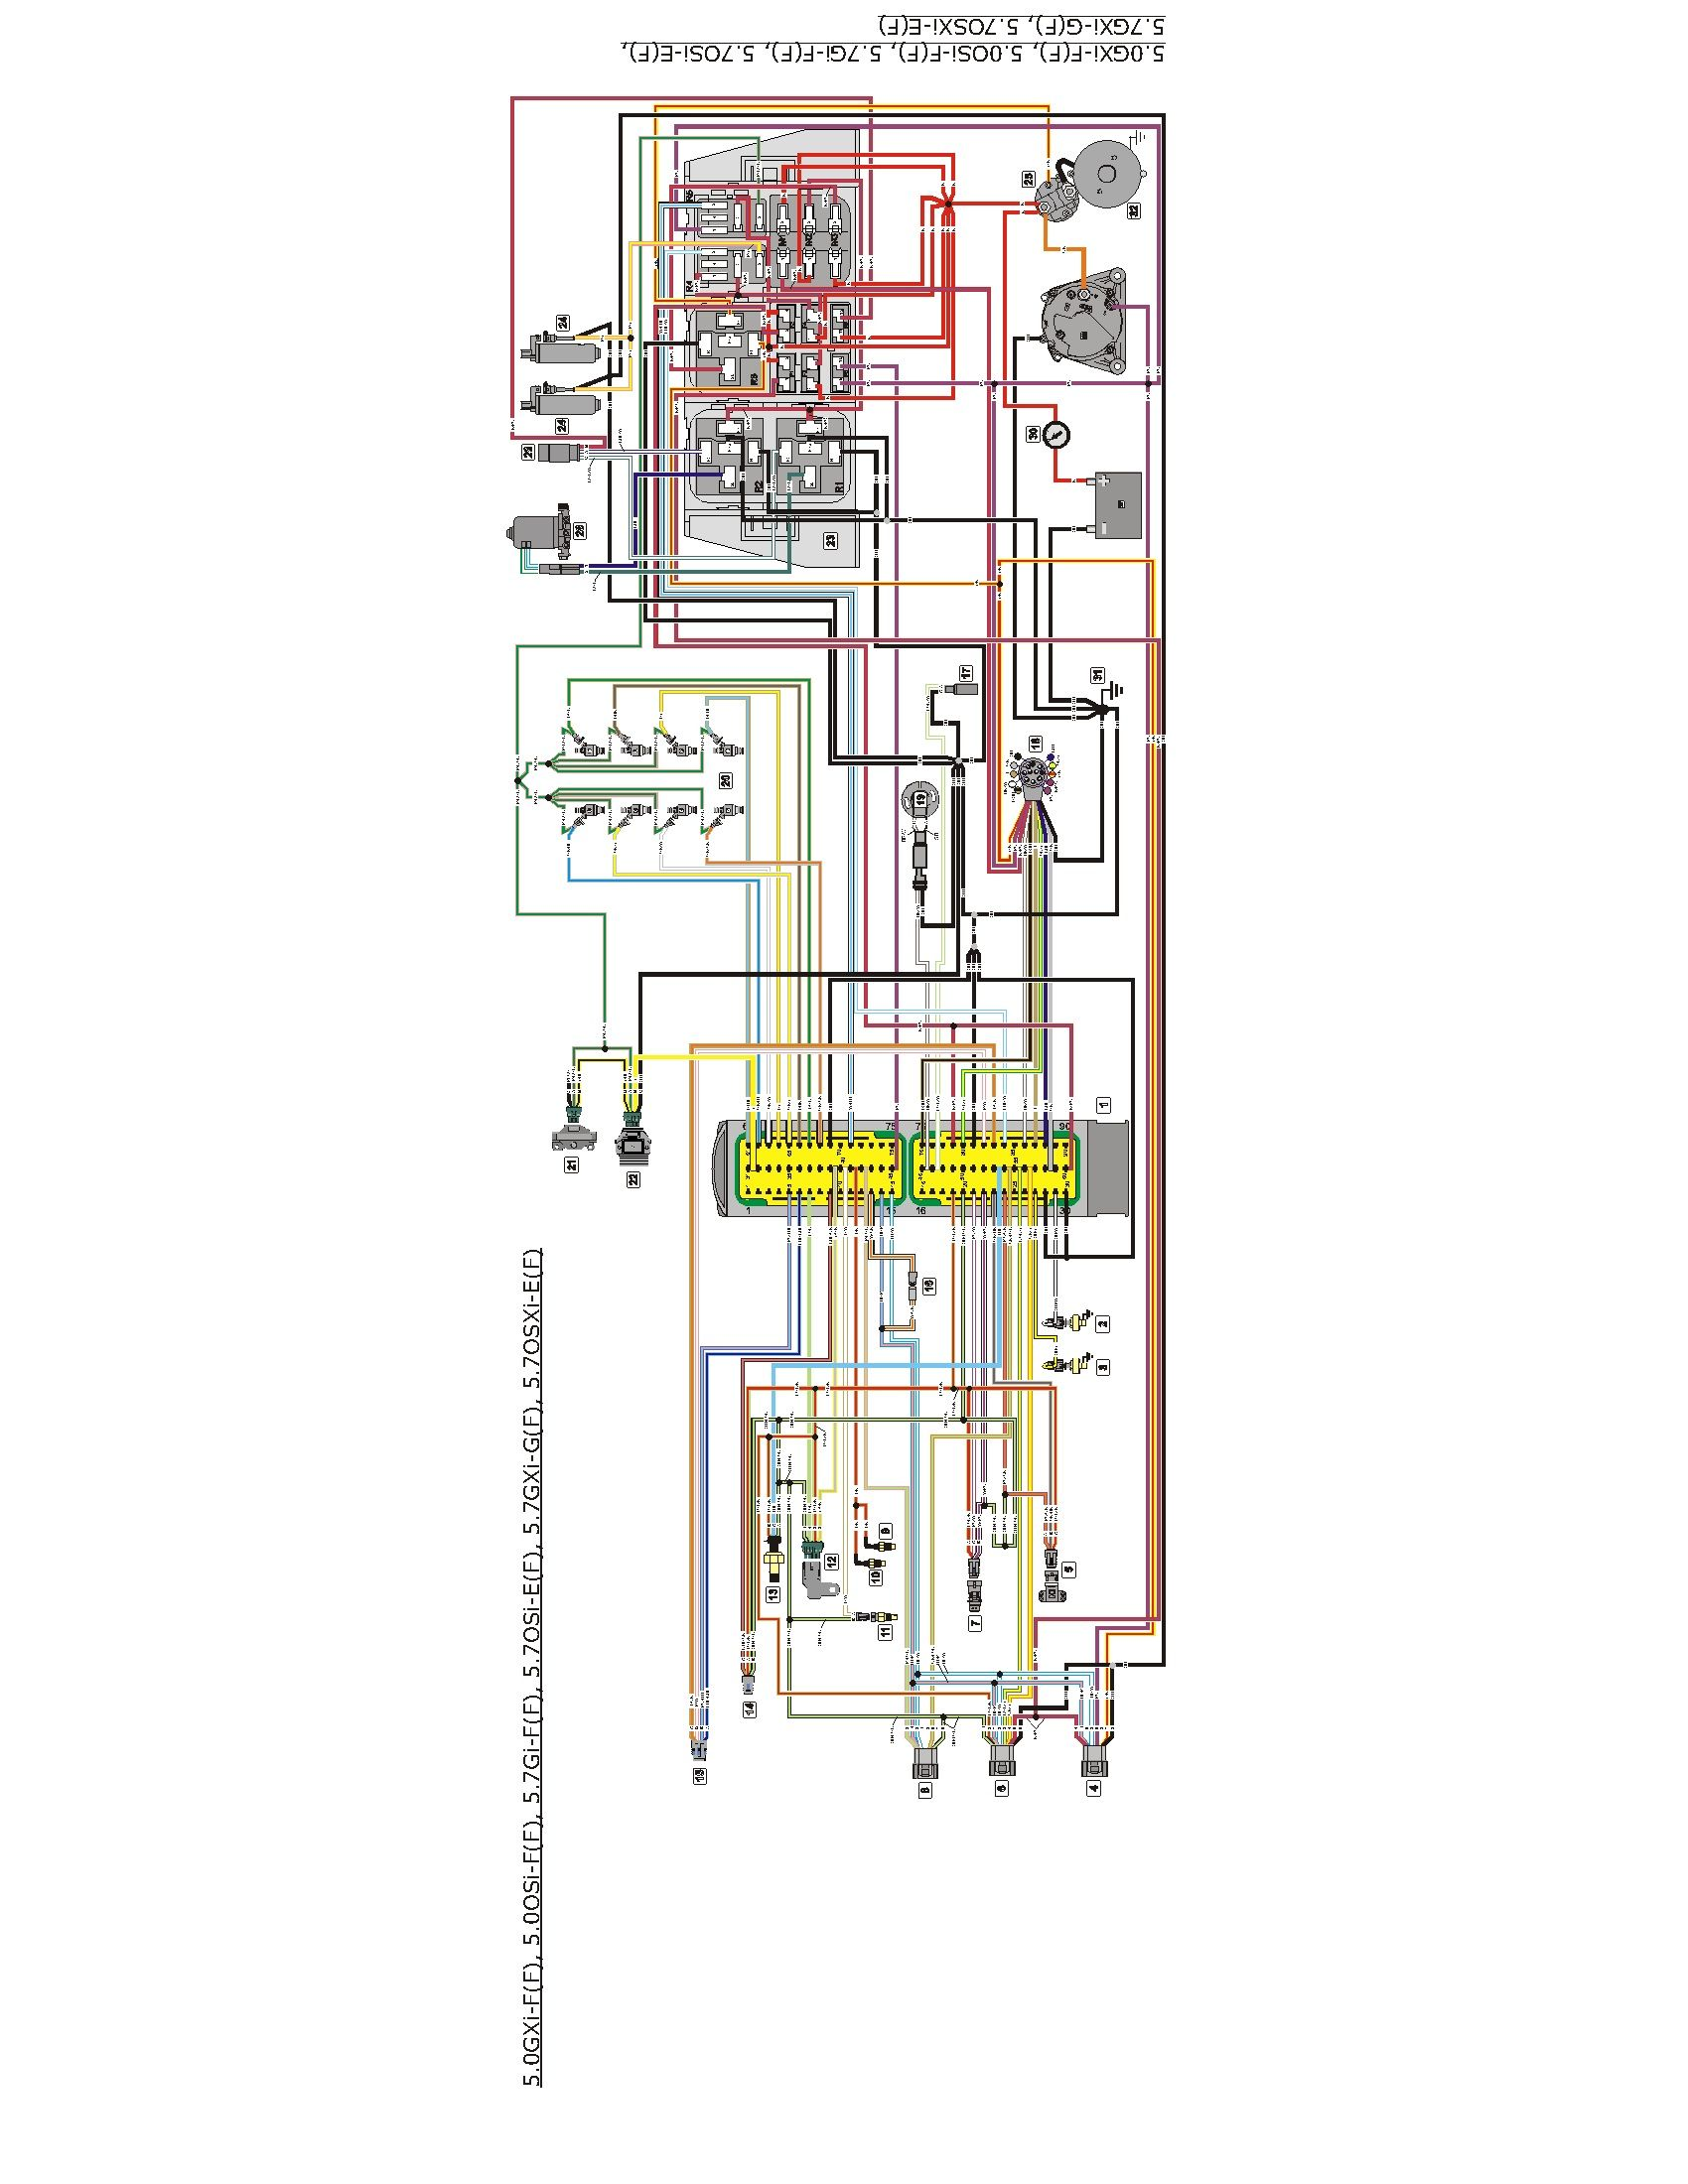 Volvo Penta 57 Engine Wiring Diagram Boat Pinterest 5 Blade Trailer